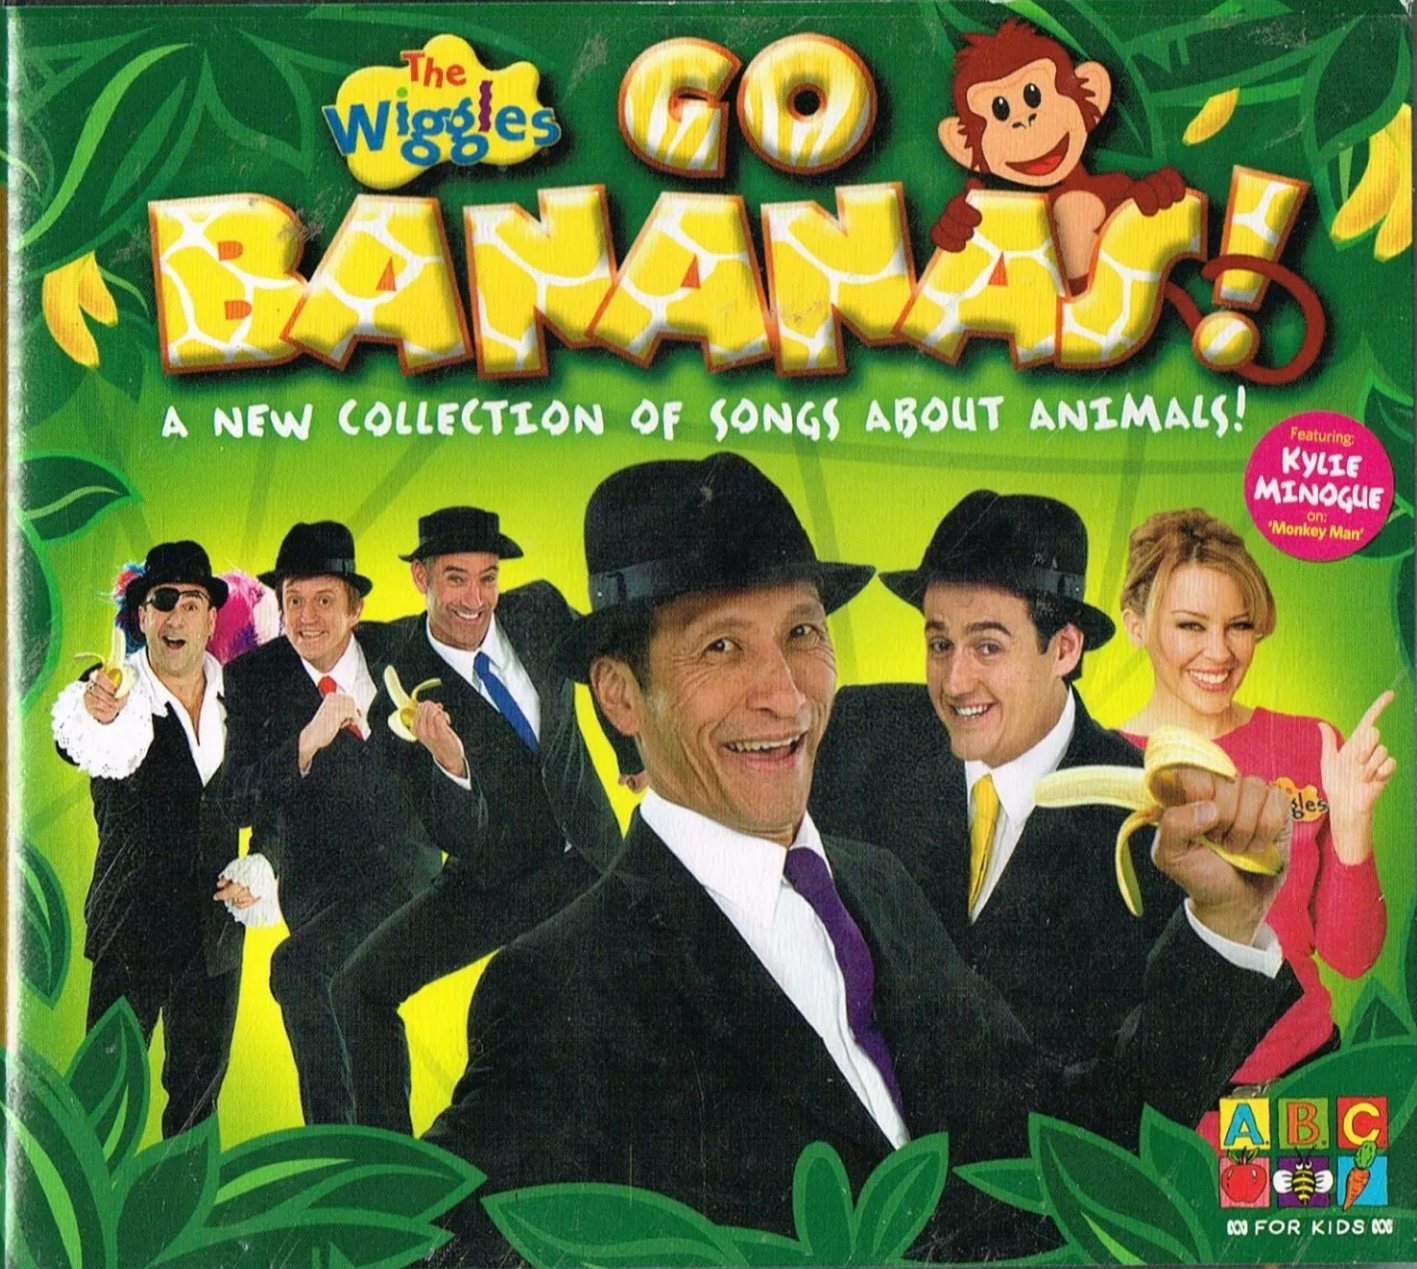 The Wiggles Go Bananas! (album)